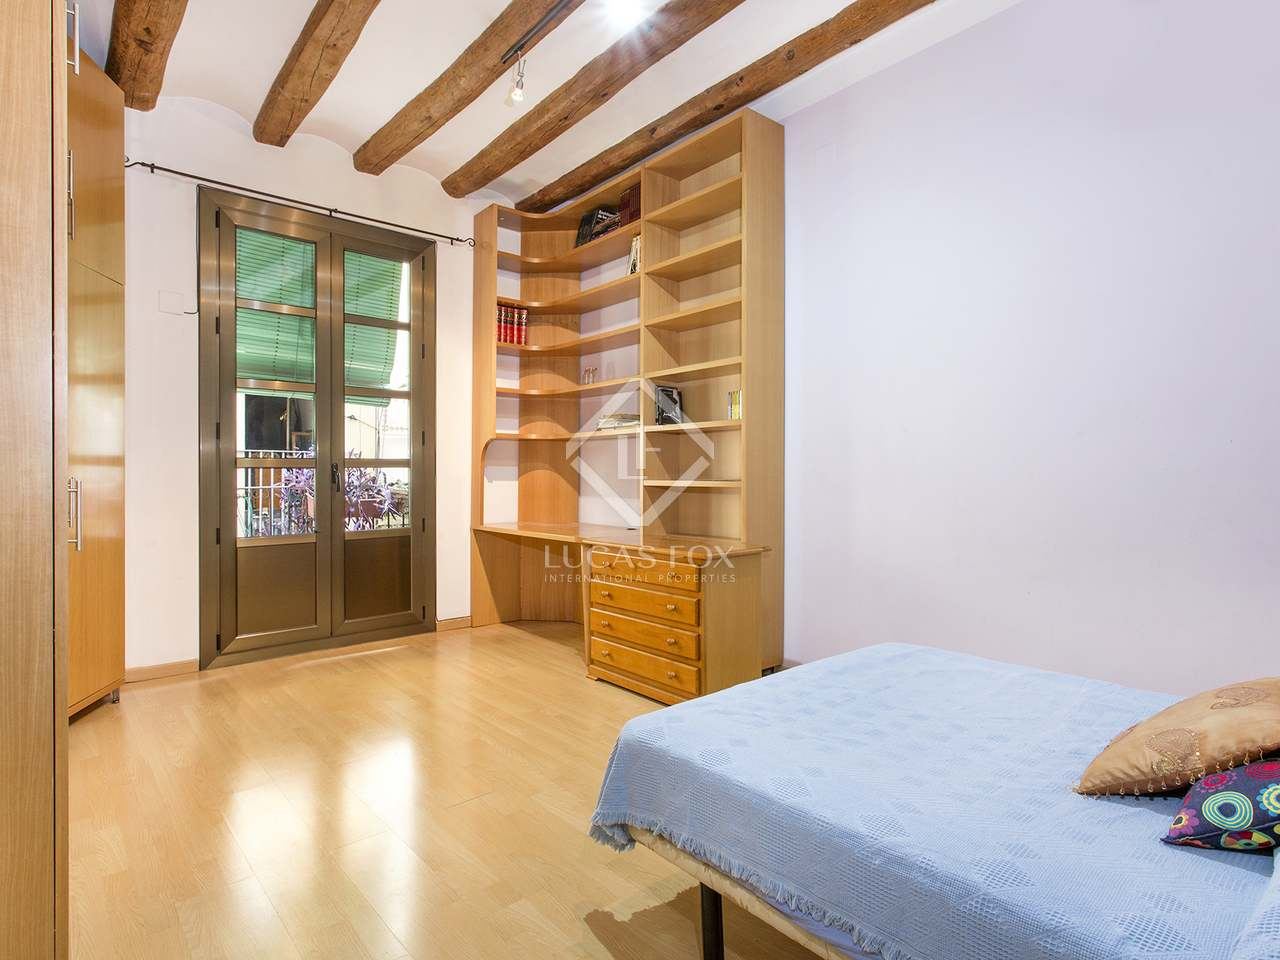 1 Bedroom Apartment For Sale In The Heart Of El Born Barcelona Old Town